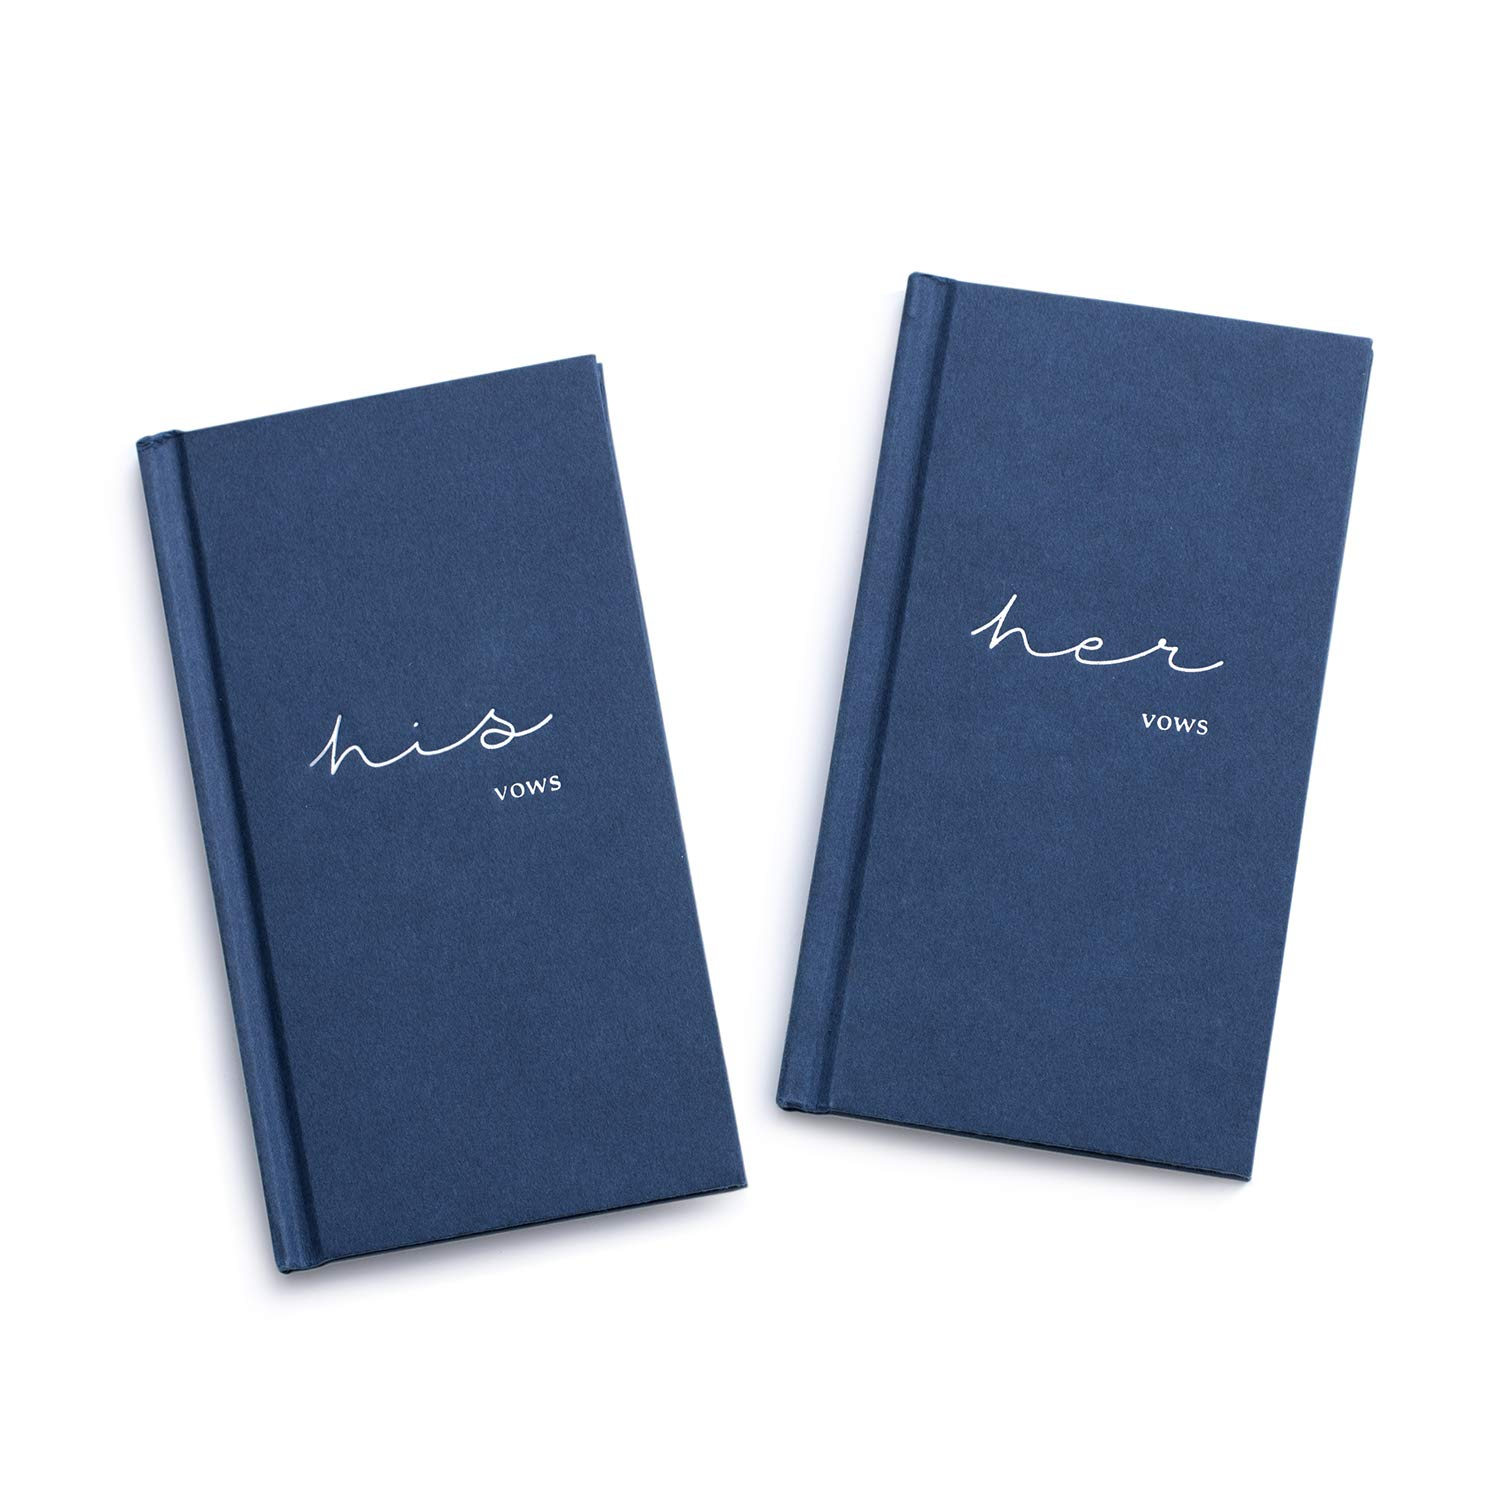 Ling's moment Hardcover Vow Books His and Hers Wedding Vow Books Wedding Keepsake Wedding Journal(Navy Blue)